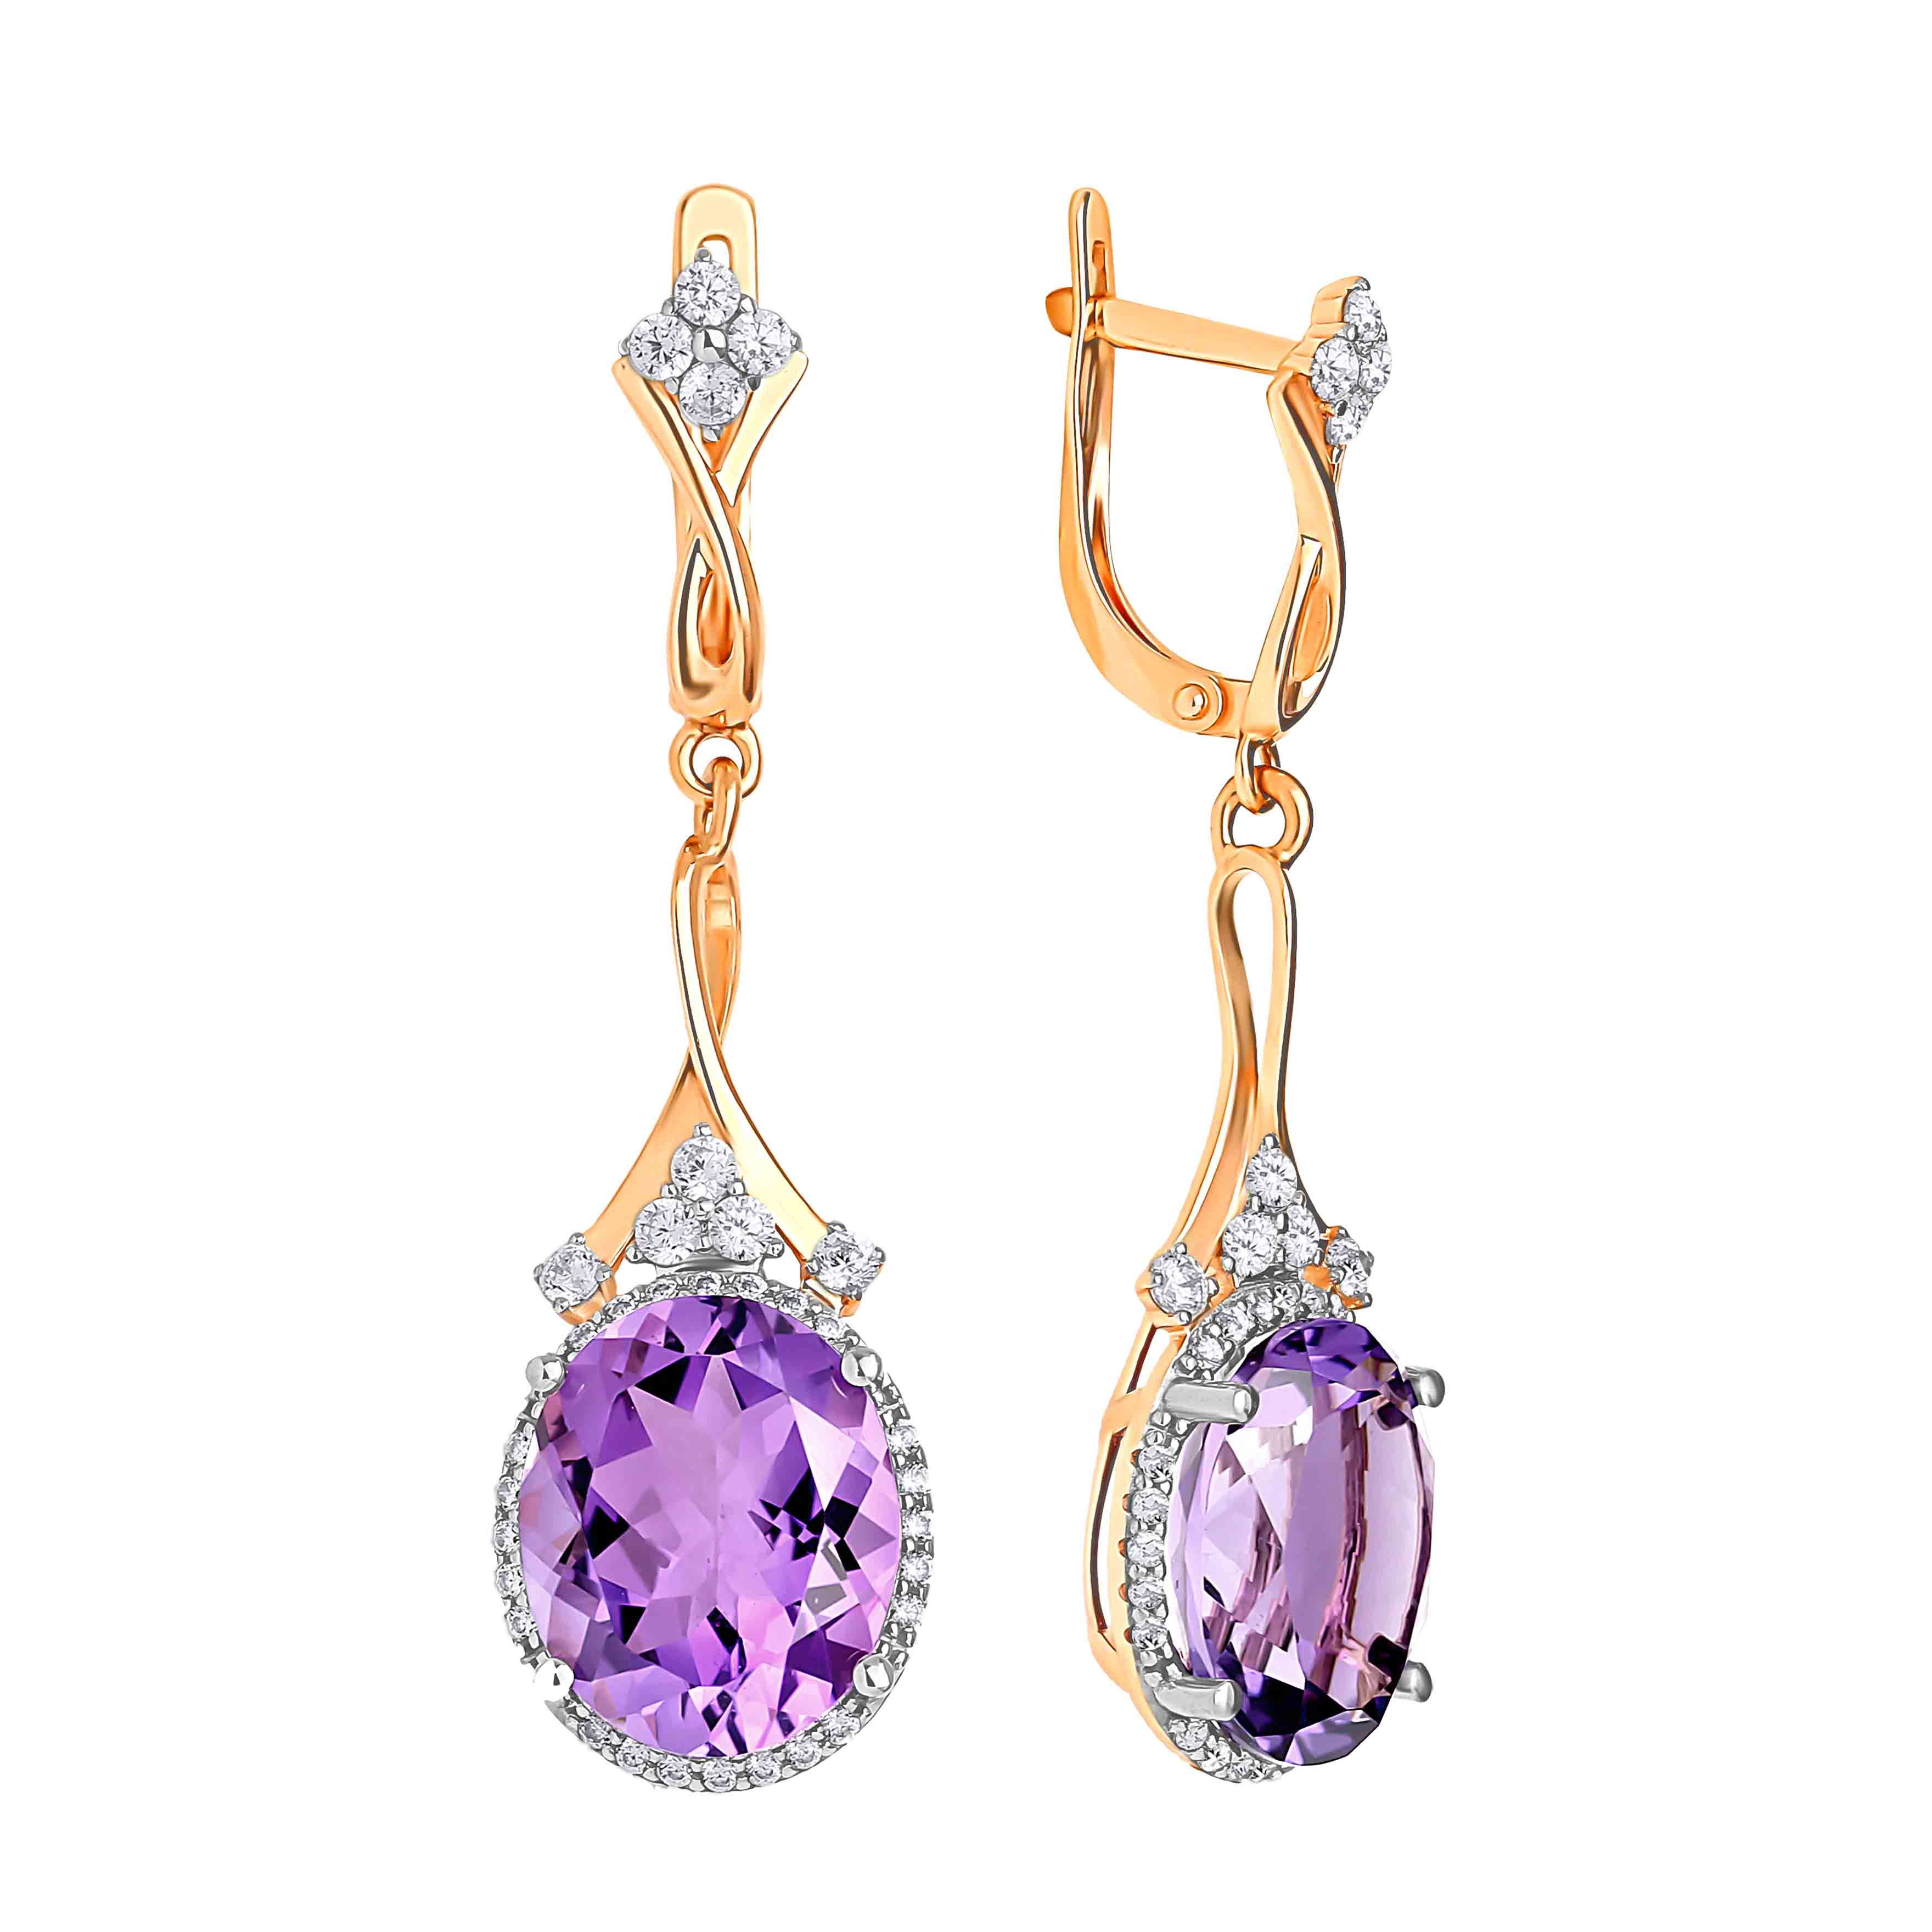 Oval-shaped Amethyst Cocktail Earrings